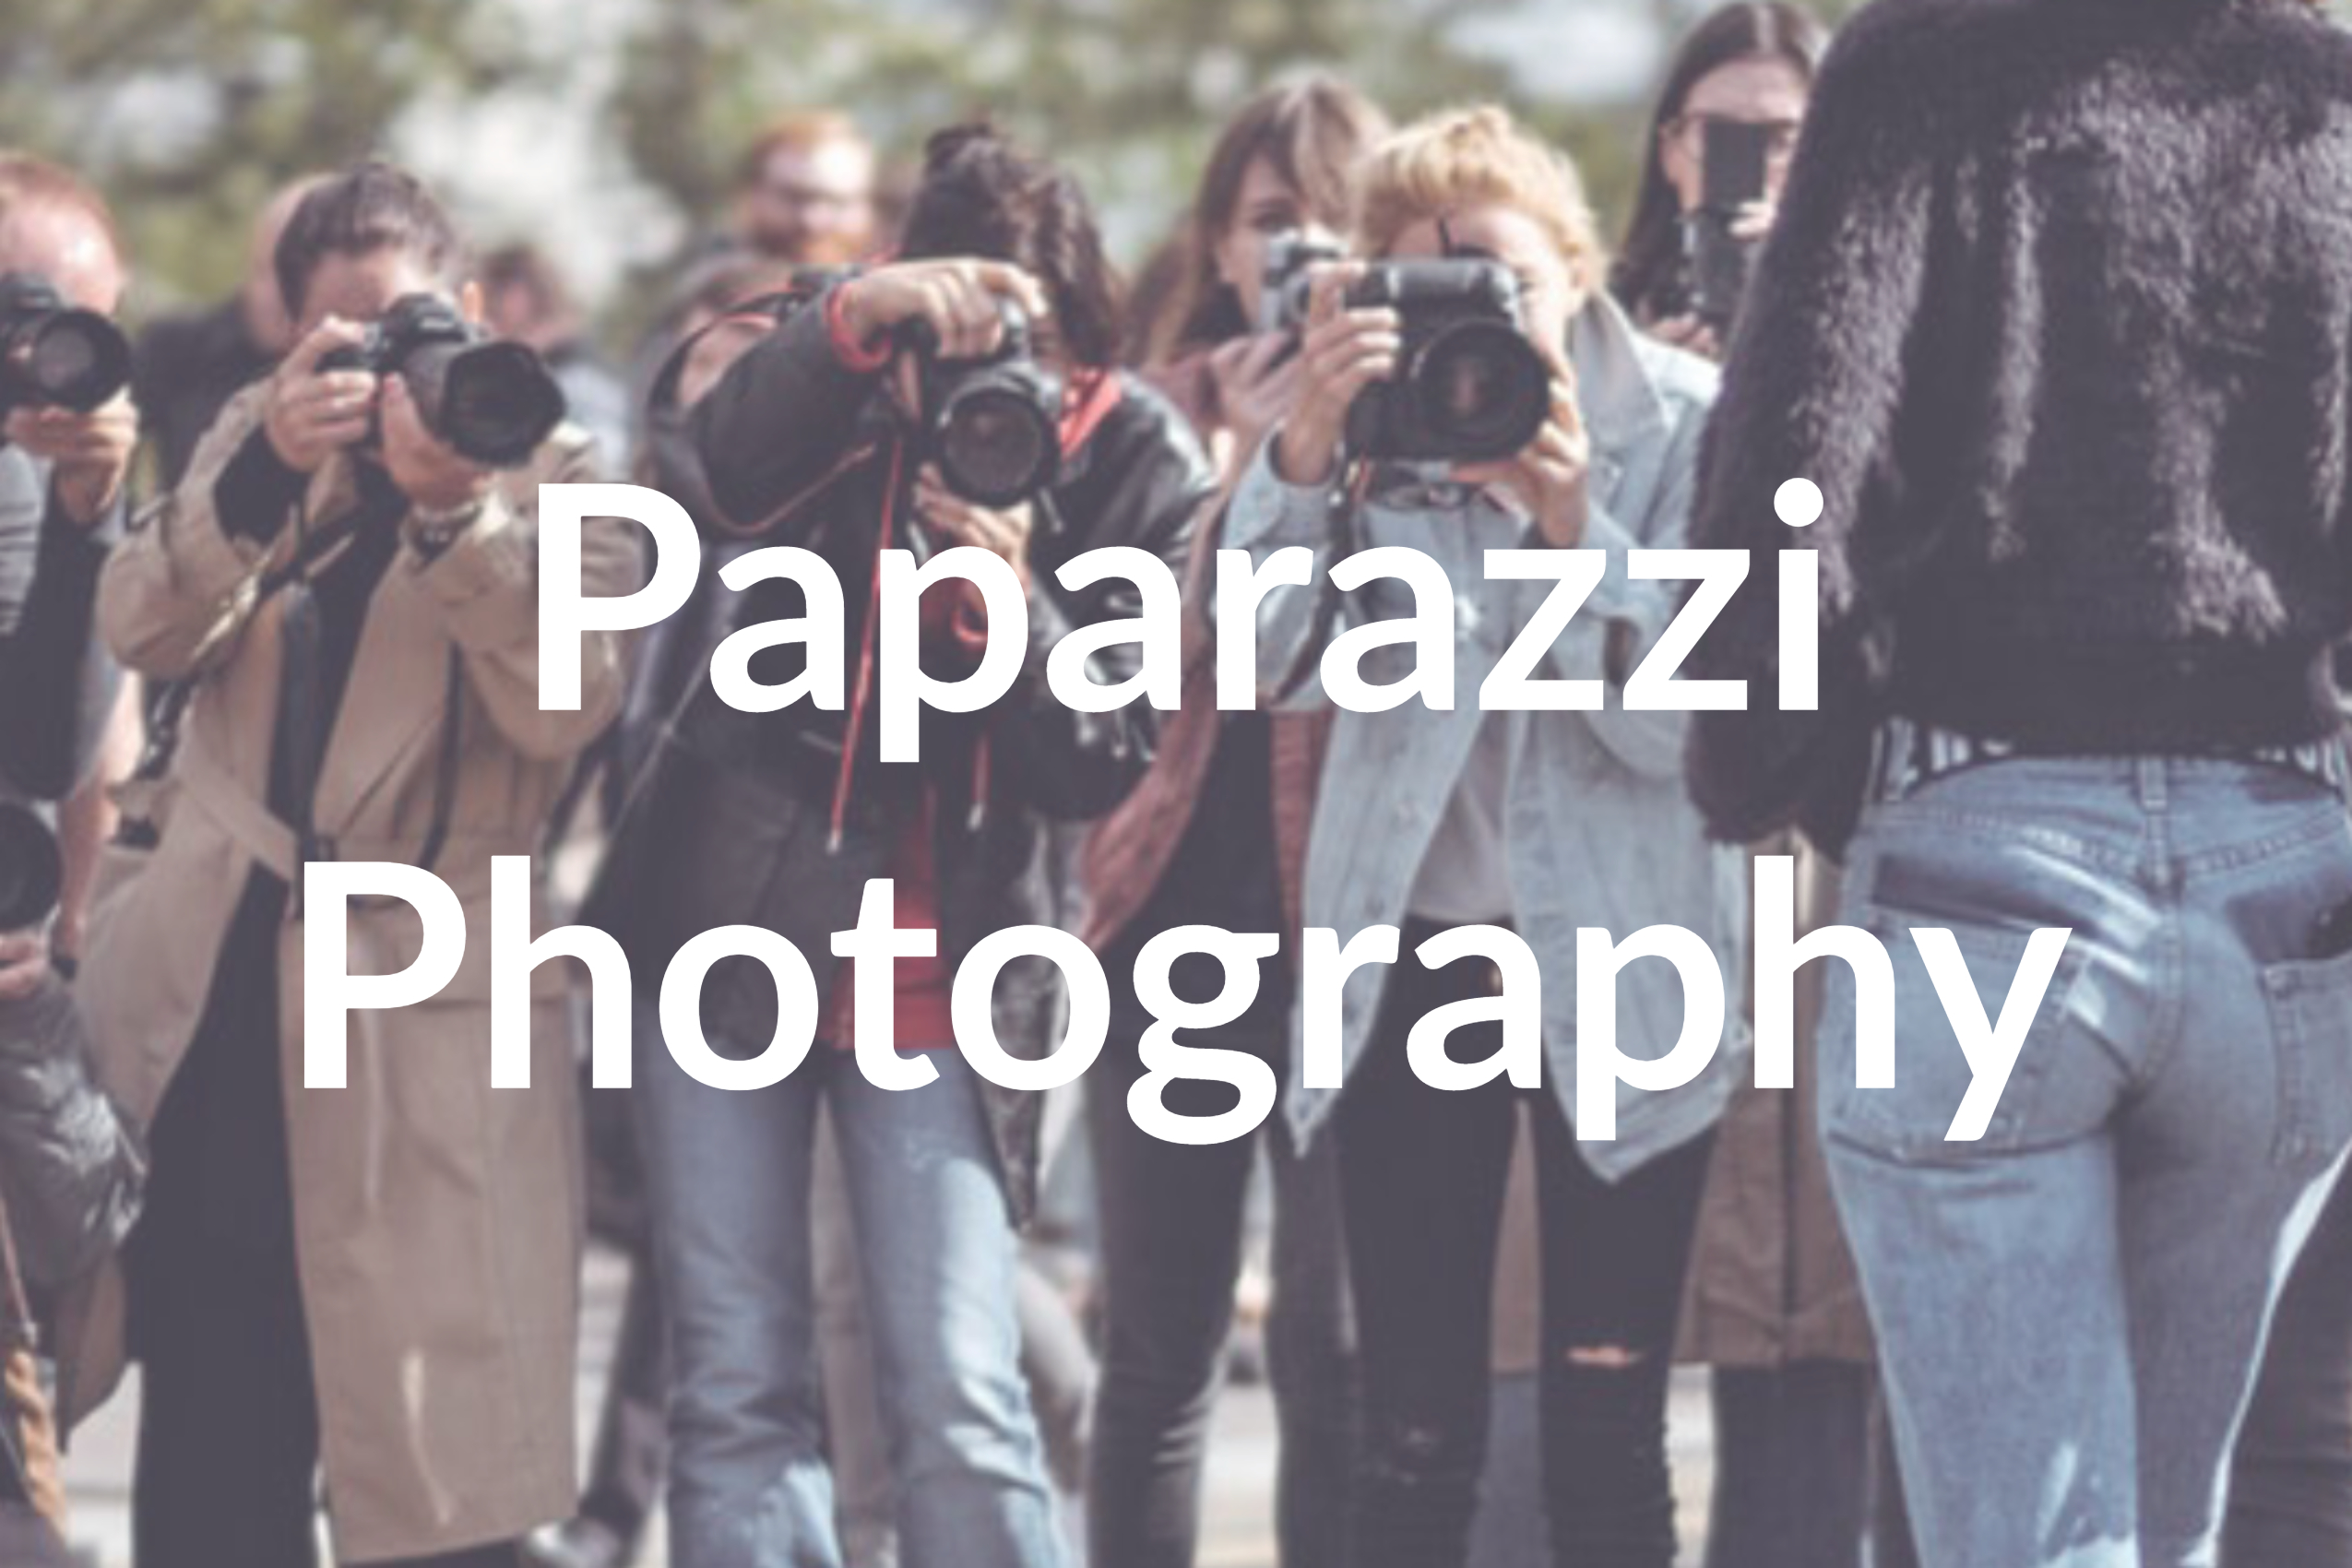 Paparazzi Photography: 5 Simple Techniques You Can Use Today